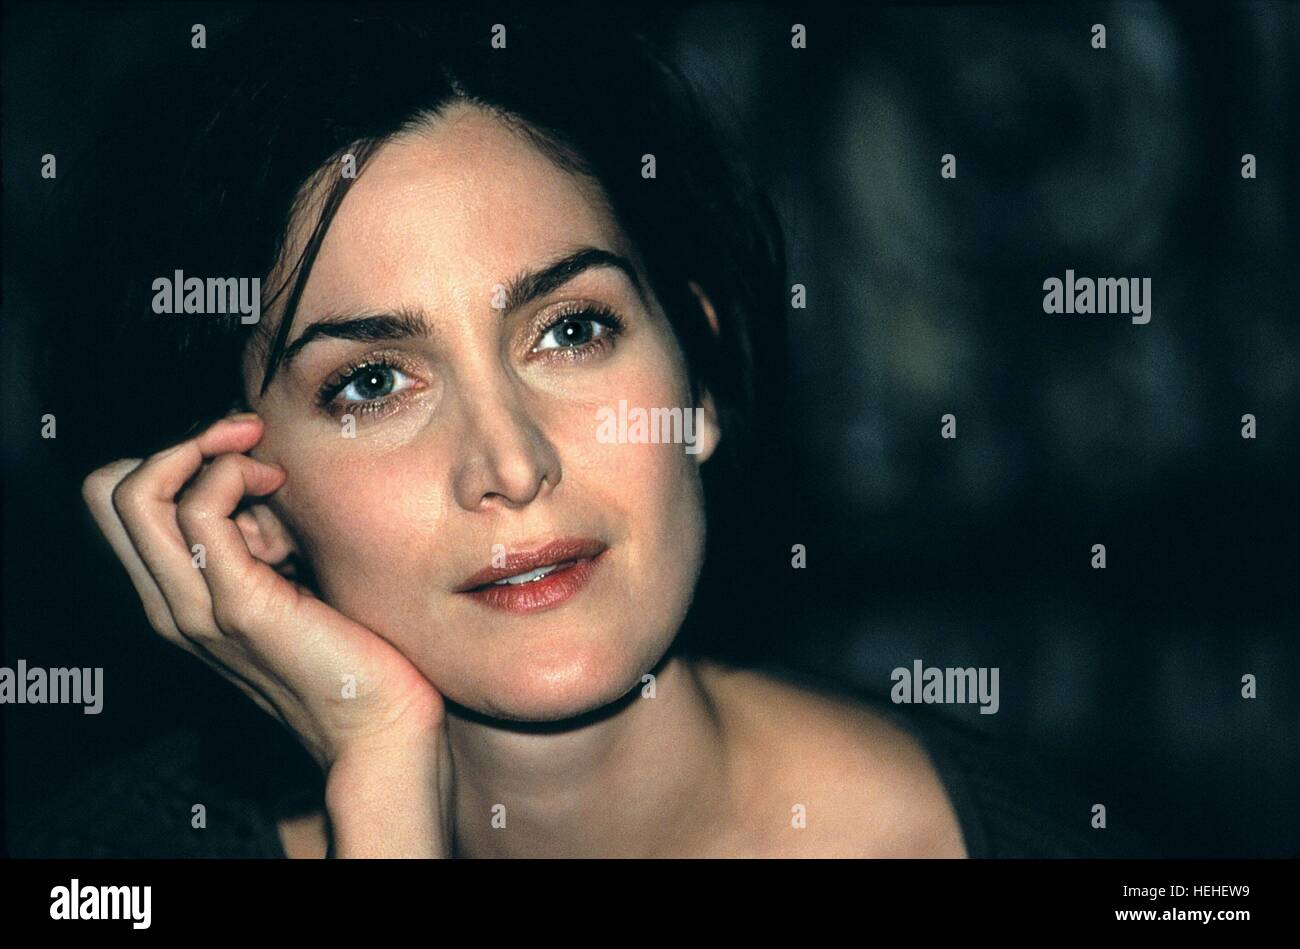 CARRIE ANNE MOSS ACTRESS (1999) - Stock Image